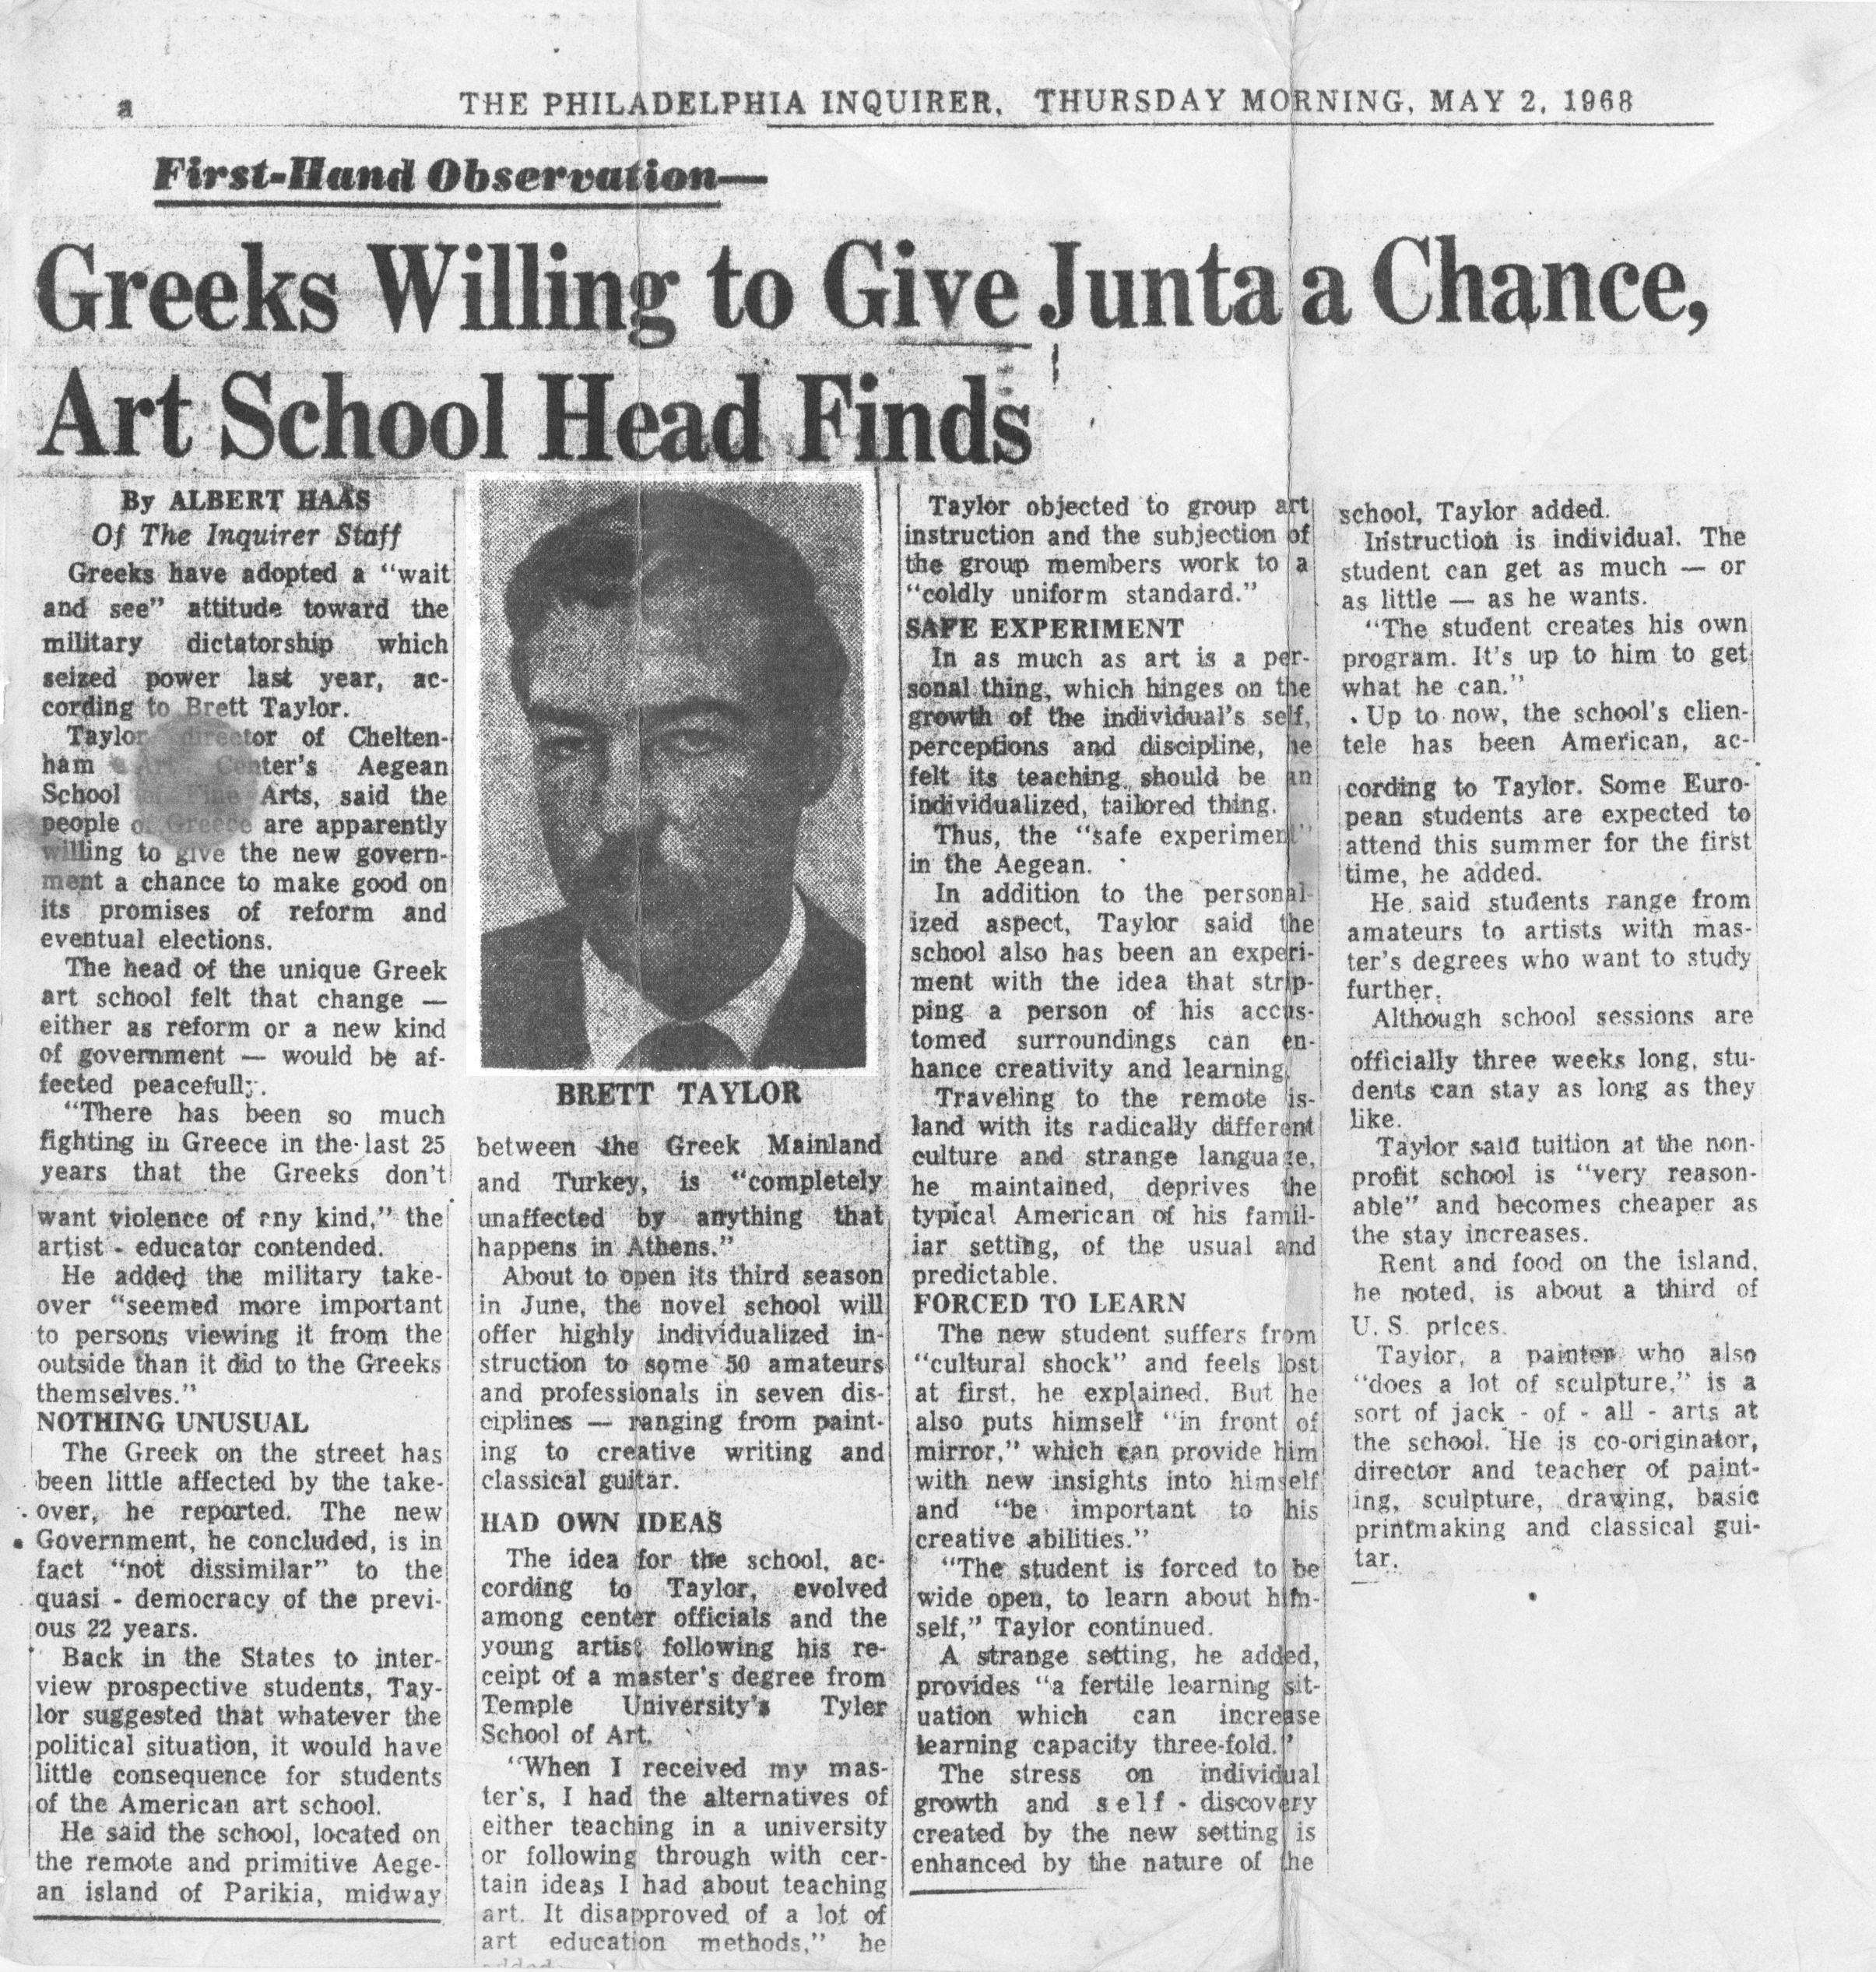 A newspaper clipping from the Philadelphia Inquirer dated May 2, 1968 in which Brett Taylor is interviewed about the Greek Junta and its effects on school enrollment.